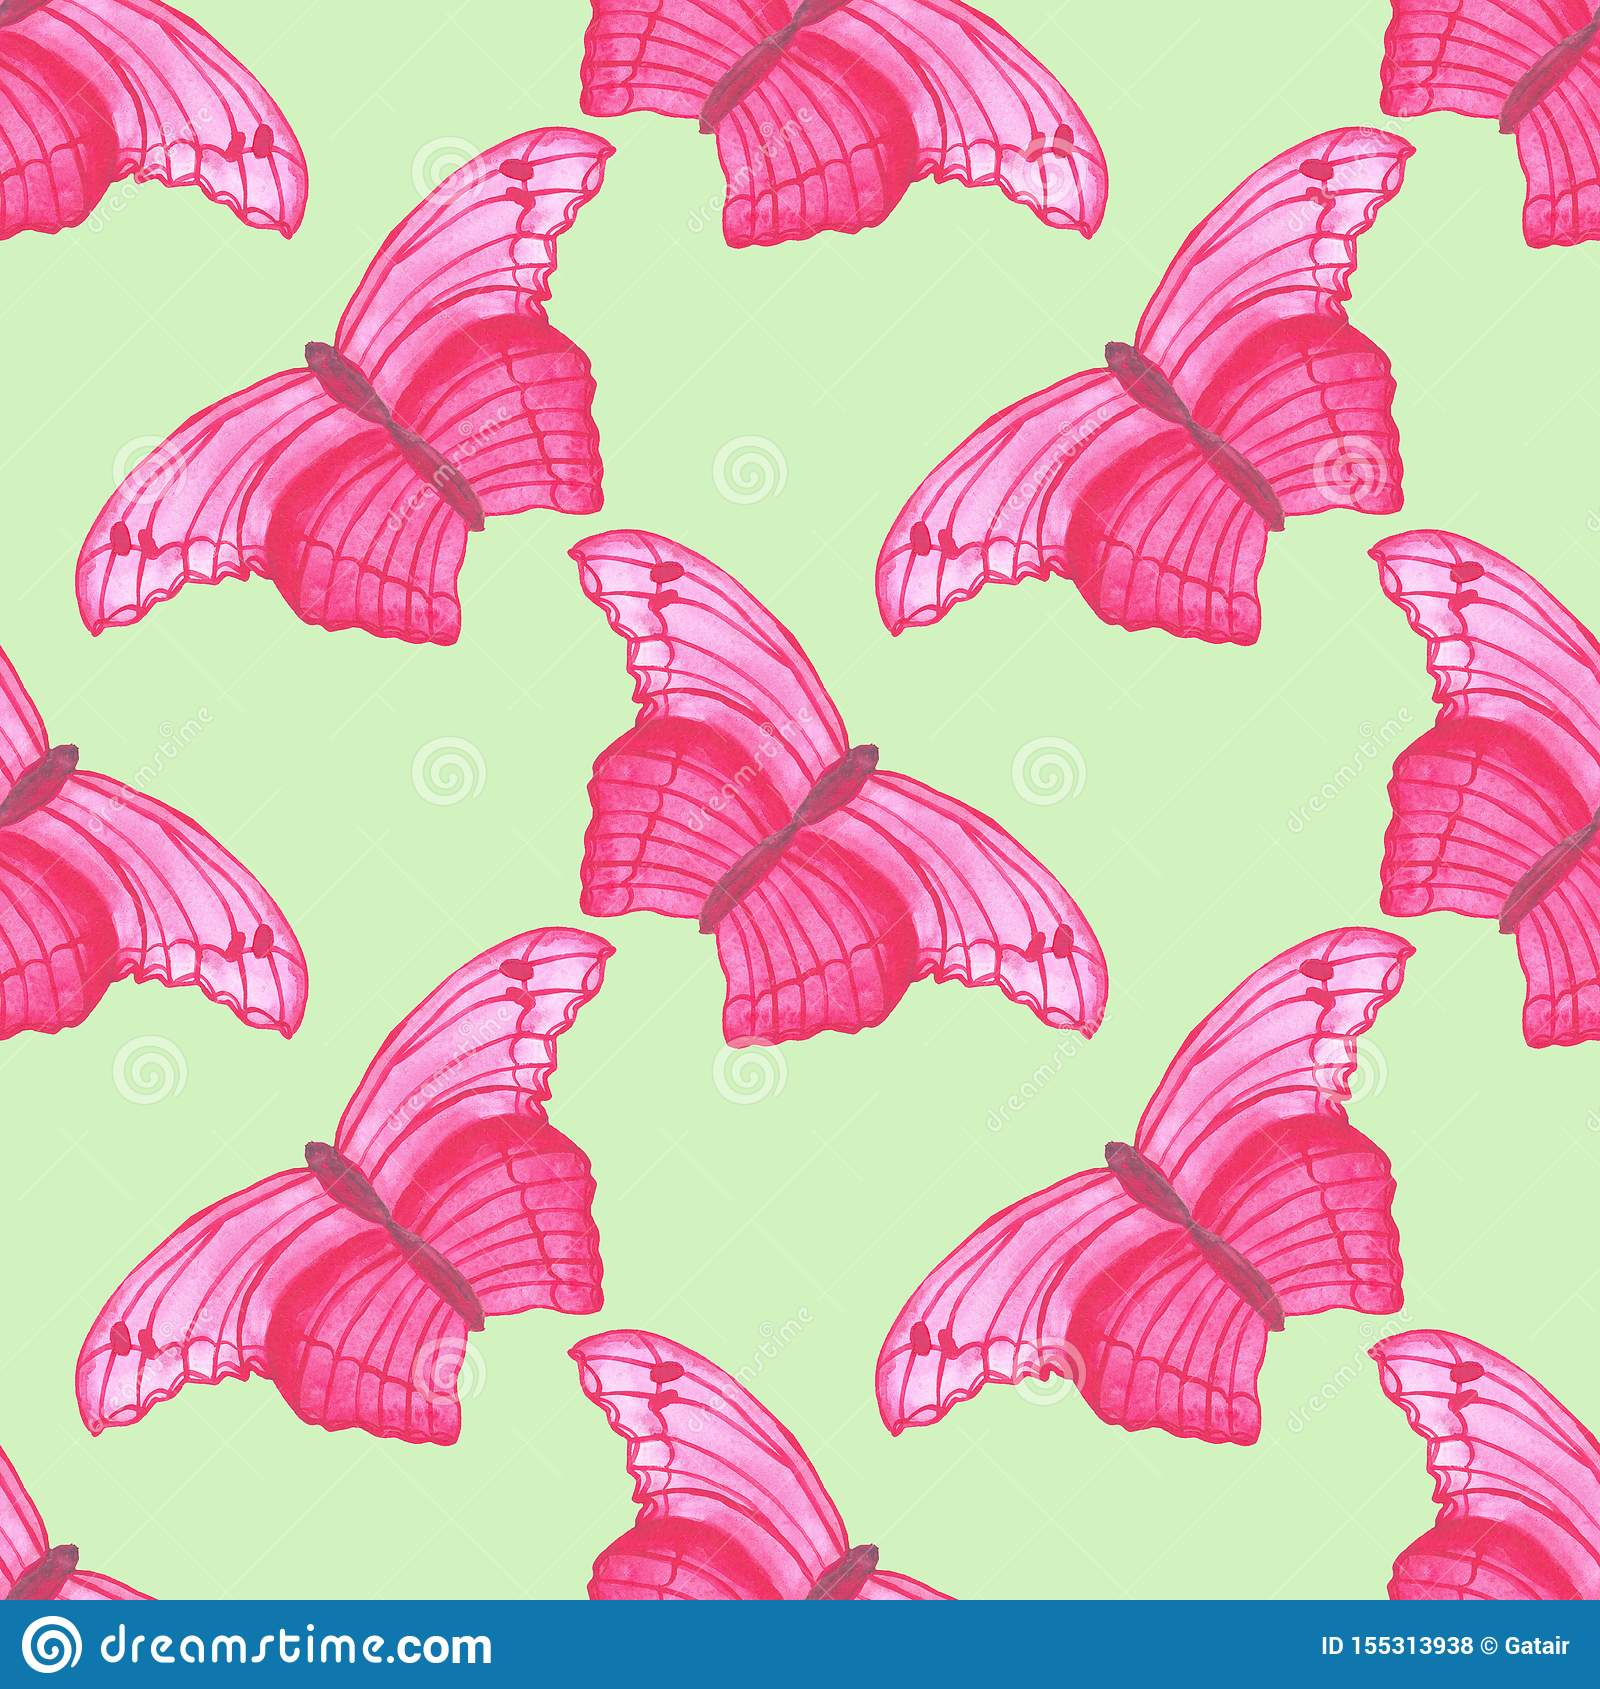 Watercolor Pink Butterfly Seamless Pattern On White Background